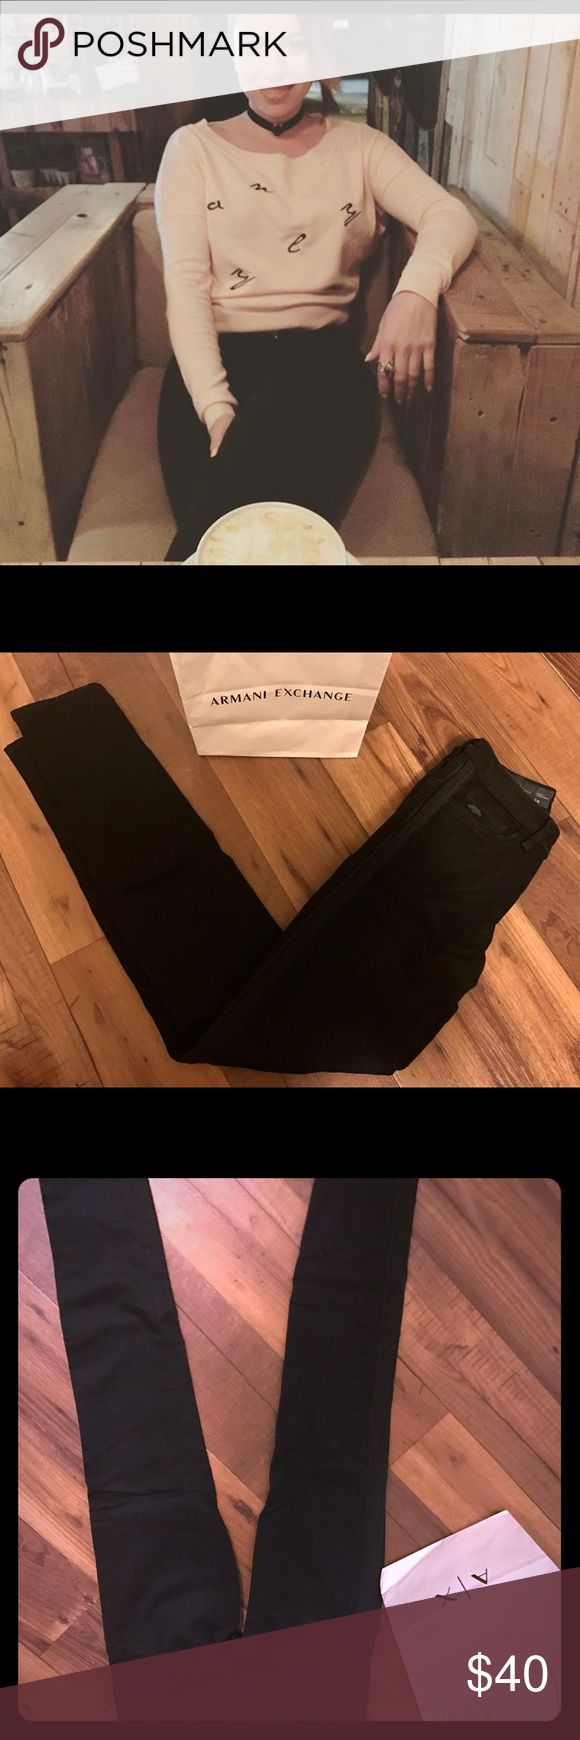 Armani Exchange Black Jeans Sz 24 Armani Blk Jeans Sz 24 •Unique Style with side leg details  •Skinny Jeans •Super style that adds great lift to your bottoms  •Worn twice, too small for me Armani Exchange Jeans Skinny